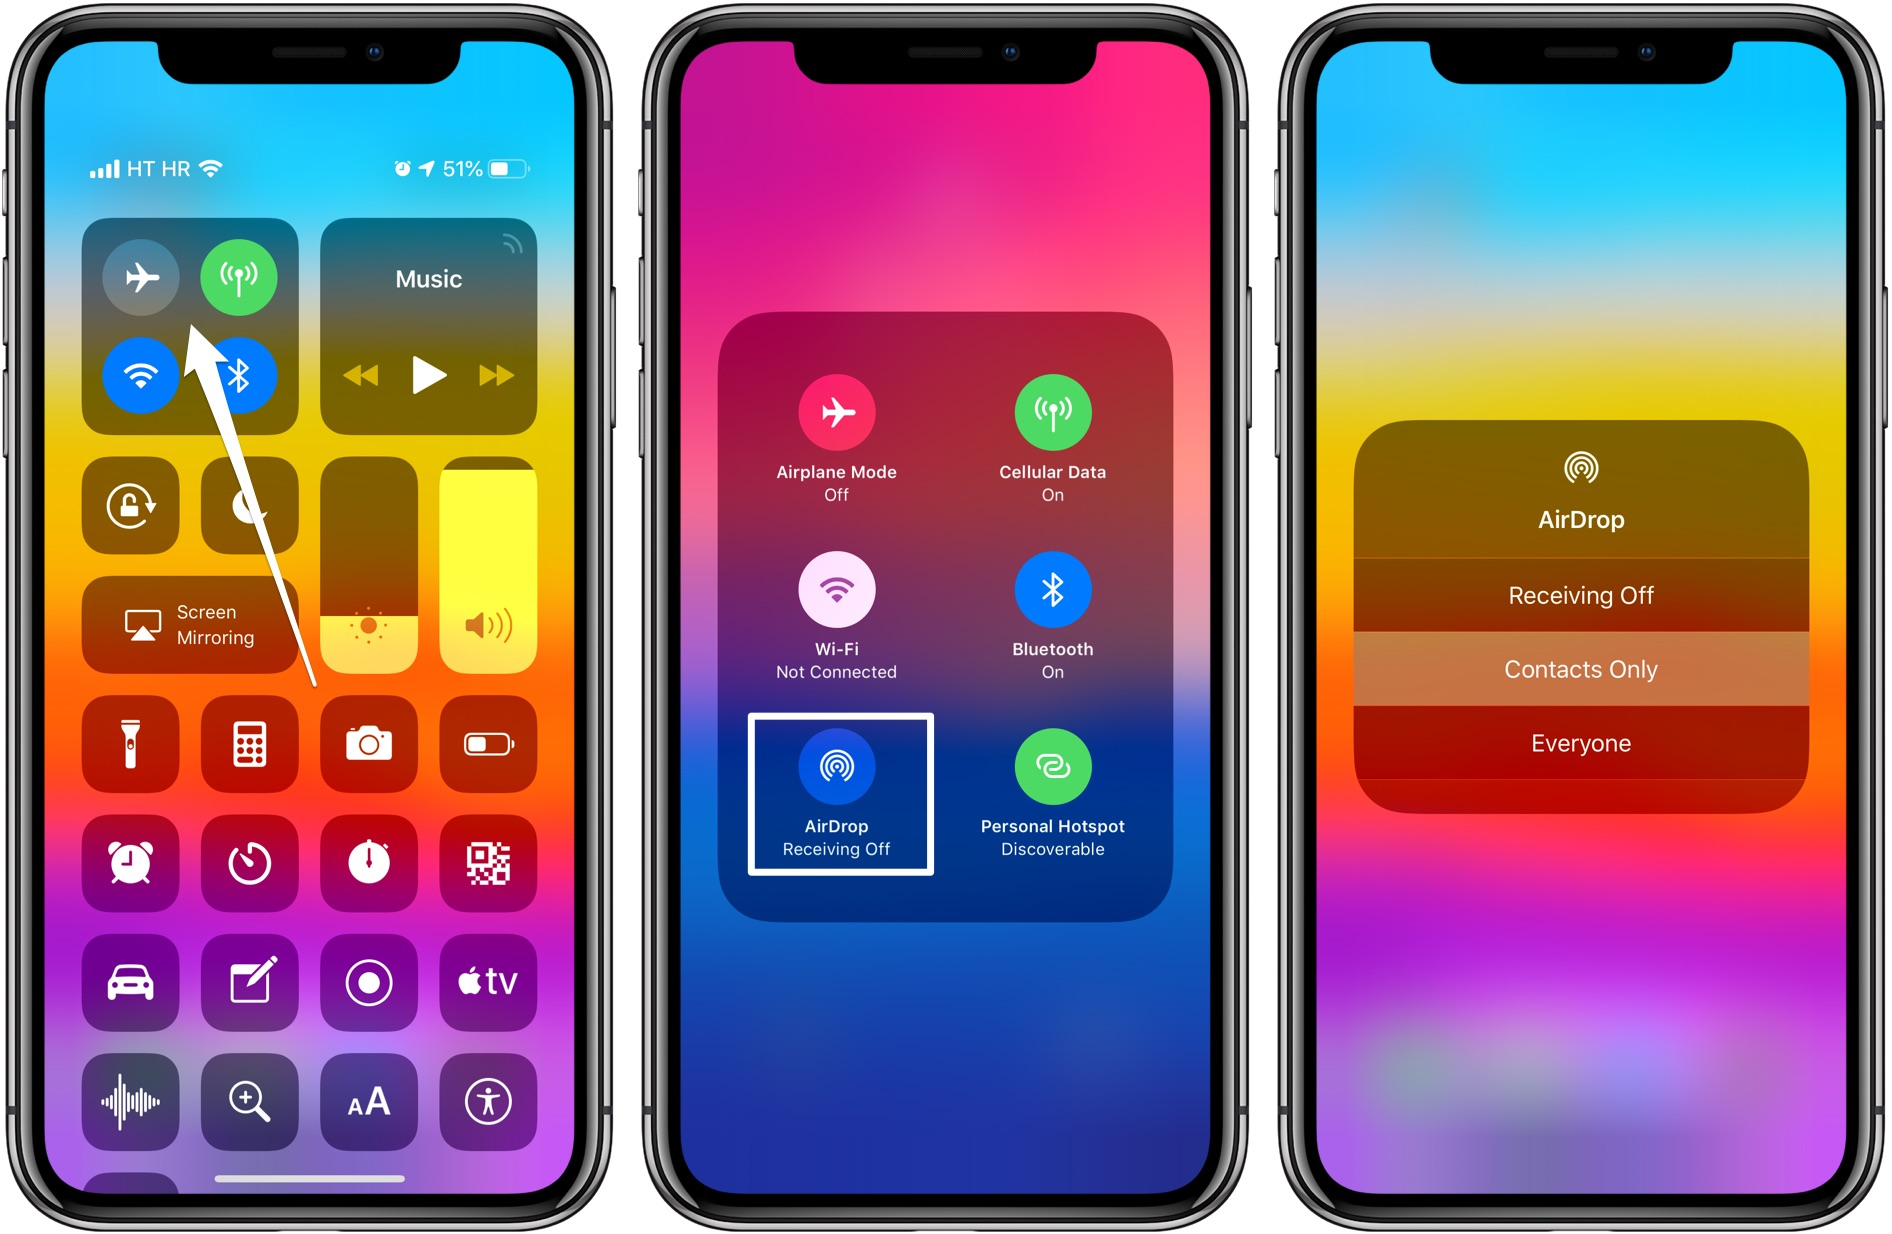 AirDrop visibility can be adjusted quickly using the network card in Control Center on iOS 12 and newer